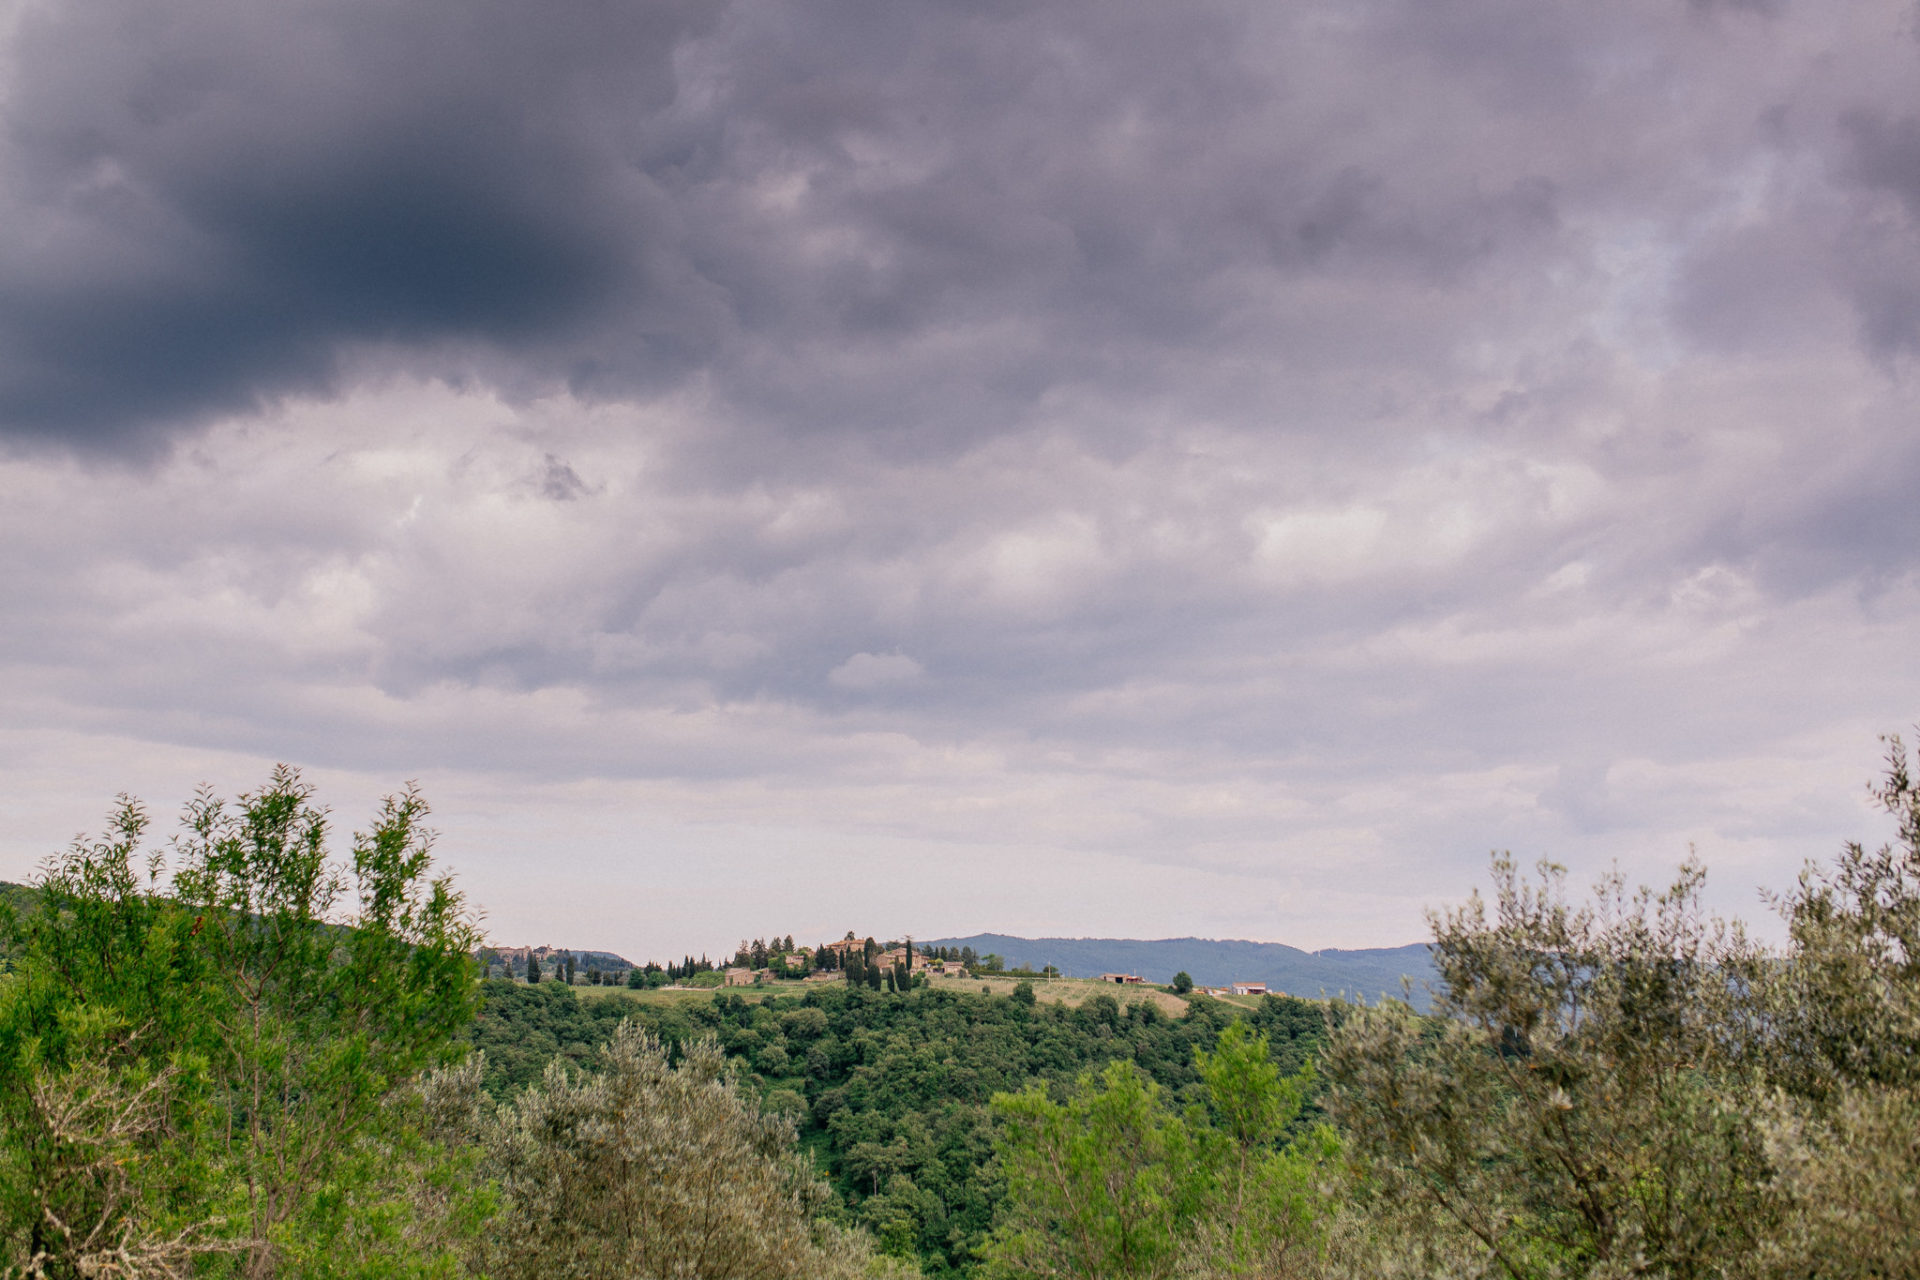 wedding photographer tuscany-italy road trip with dog-chianti region wineries hiking-organic vineyard